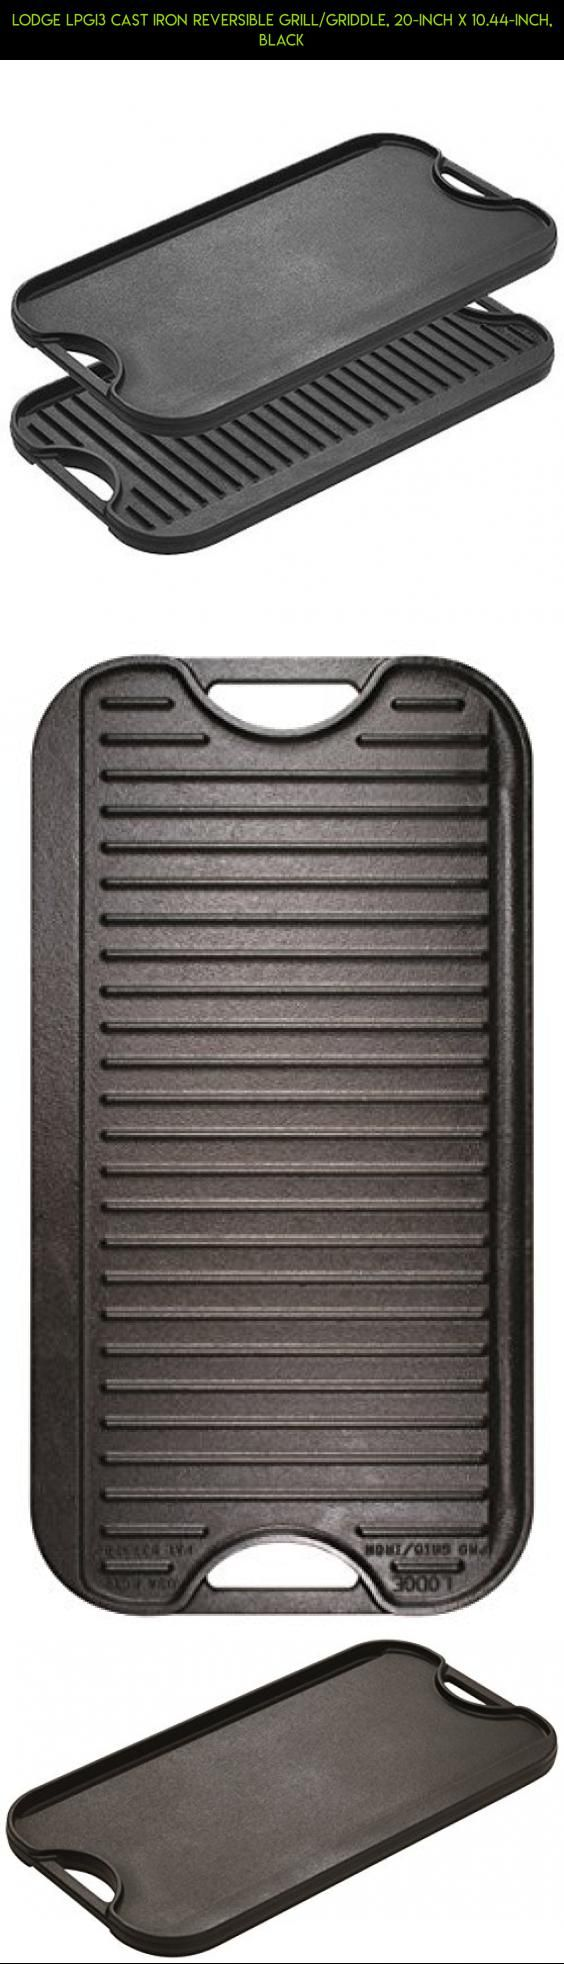 Lodge LPGI3 Cast Iron Reversible Grill/Griddle, 20 Inch X 10.44 Inch